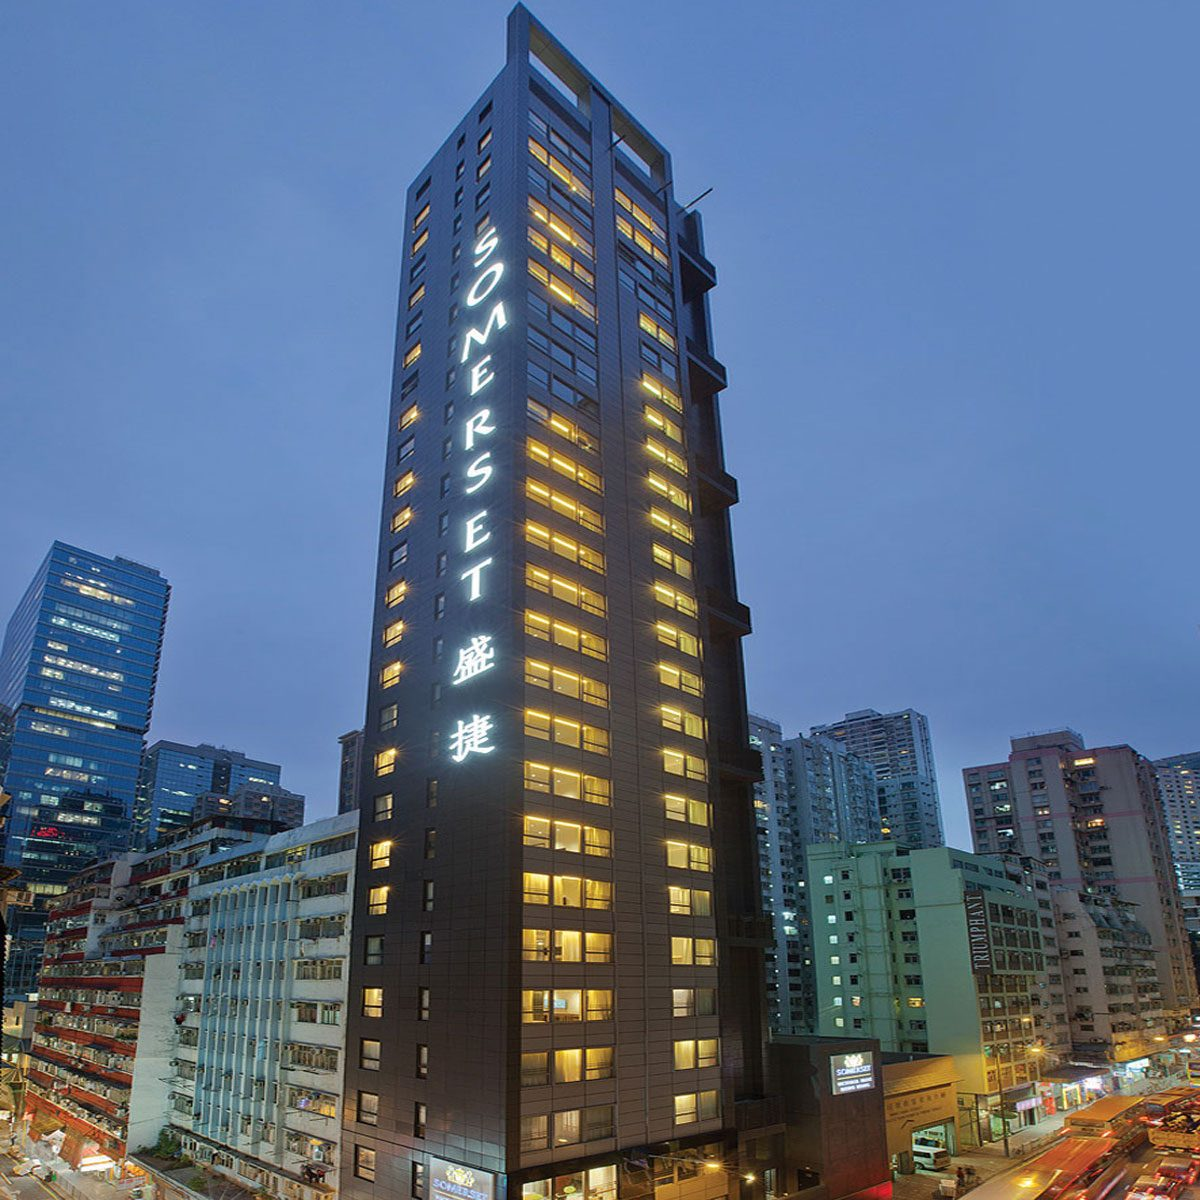 Somerset Victoria Park Hong Kong, Hotel Development at No. 118 Electric Road, Causeway Bay, Hong Kong